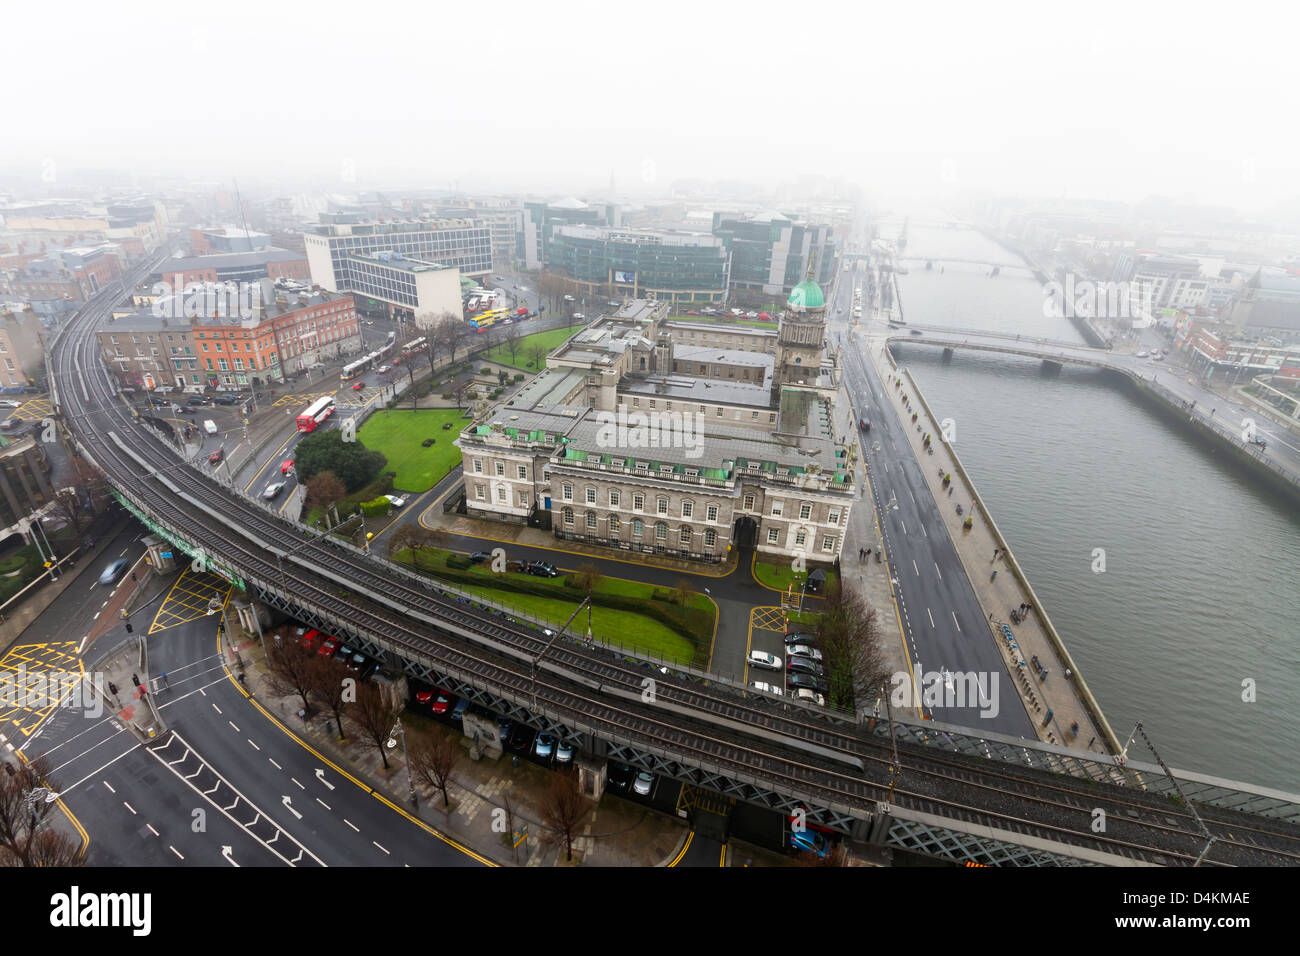 Dublin, Ireland - March 07, 2013: Aerial shot of Dublin city centre on a typical fogy day. - Stock Image